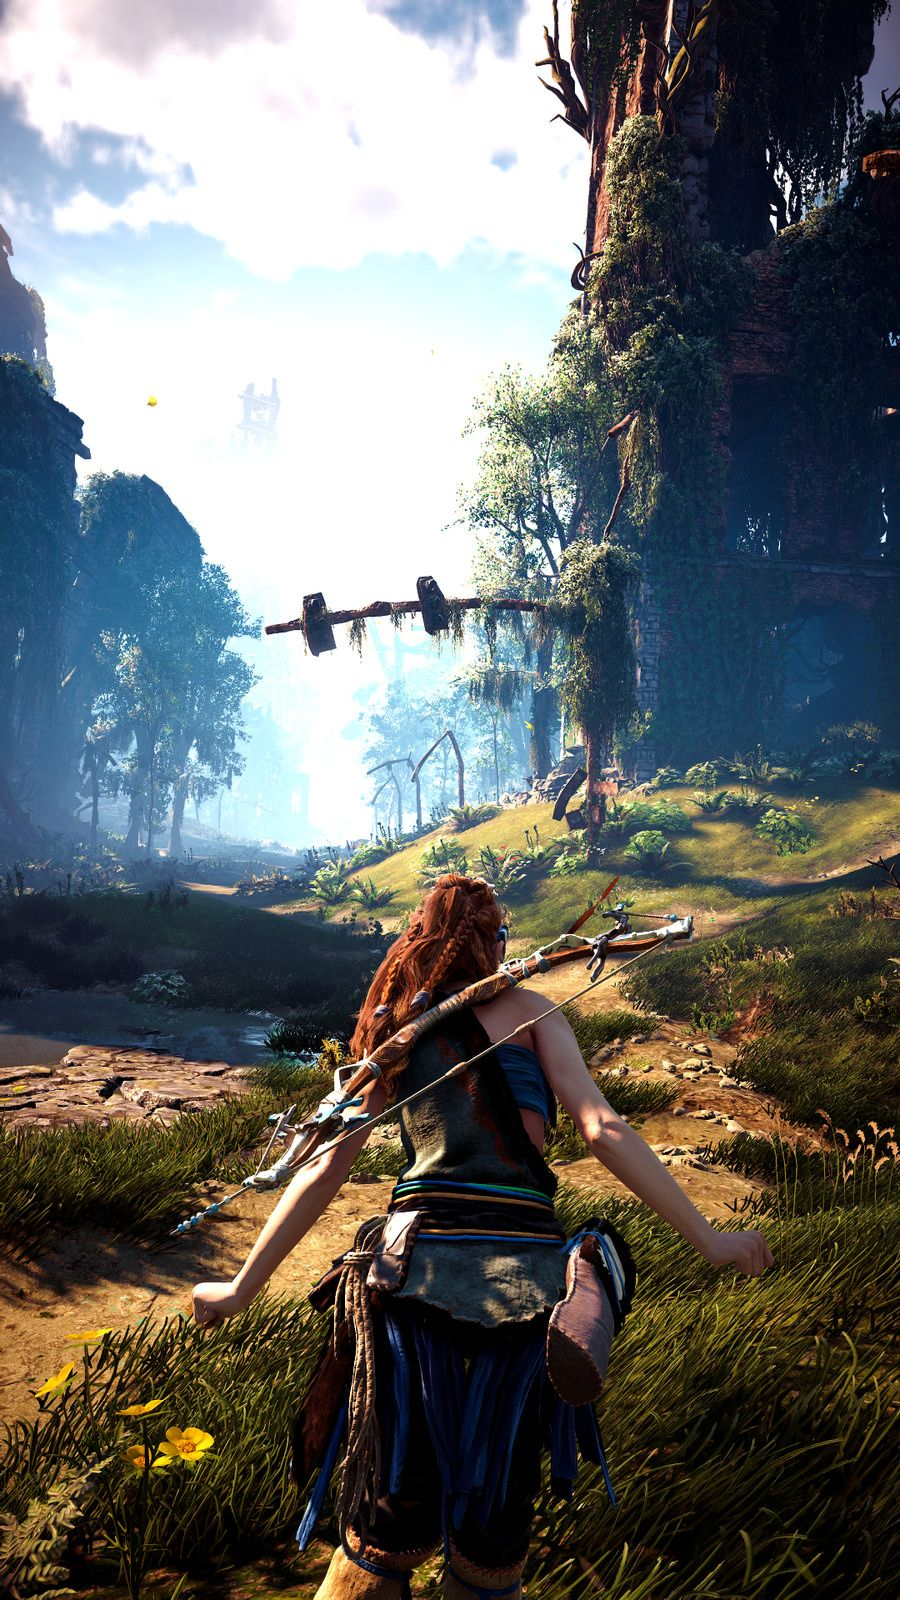 Horizon Zero Dawn   Photomode in game. PS4 Pro with HDR (1080p)